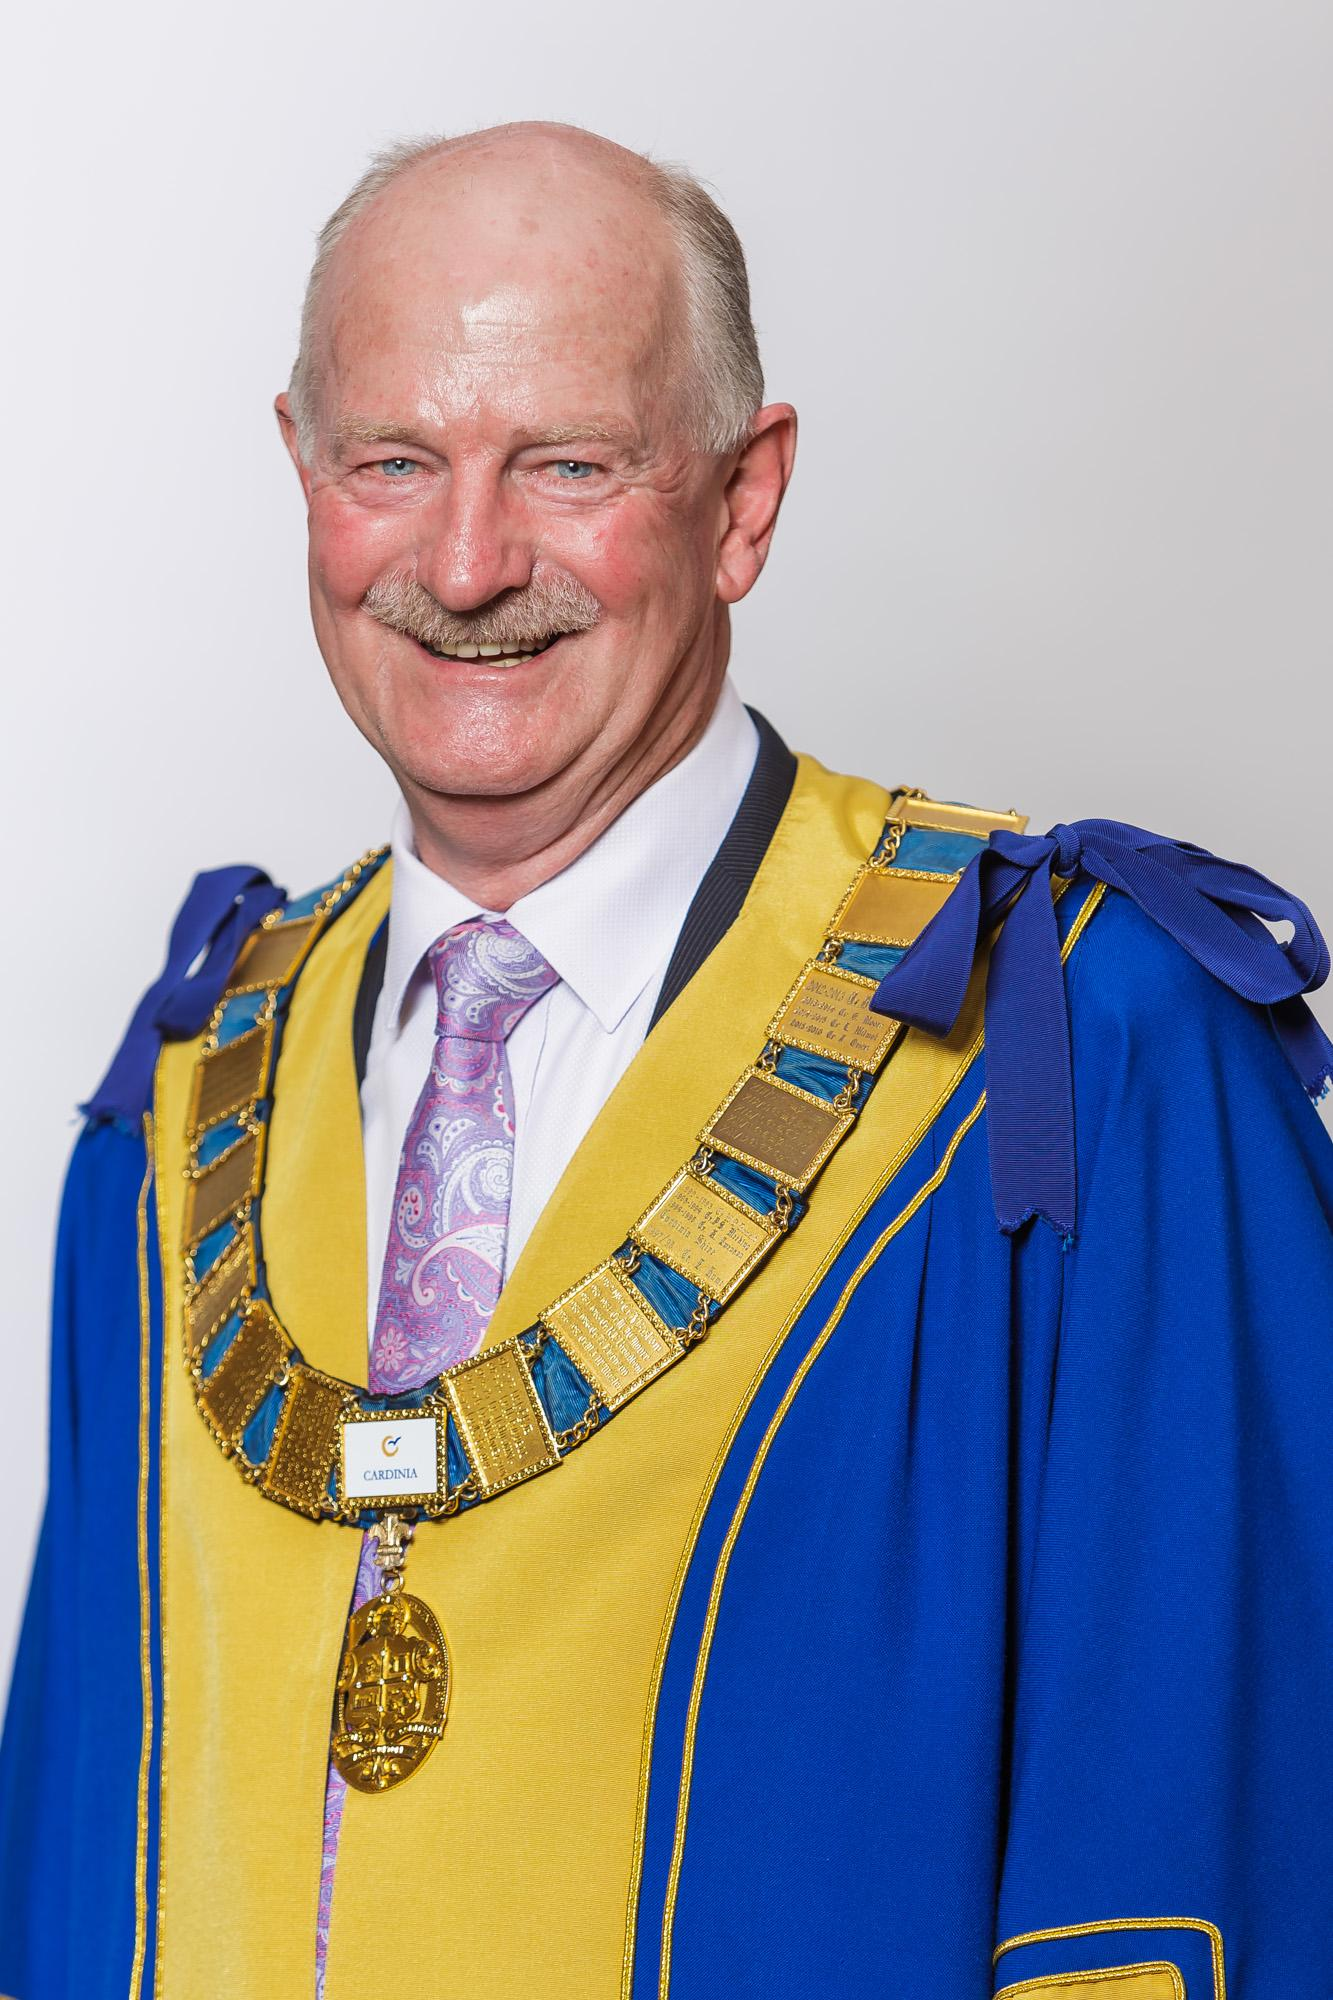 Headshot of Mayor Cr Graeme Moore on appointment